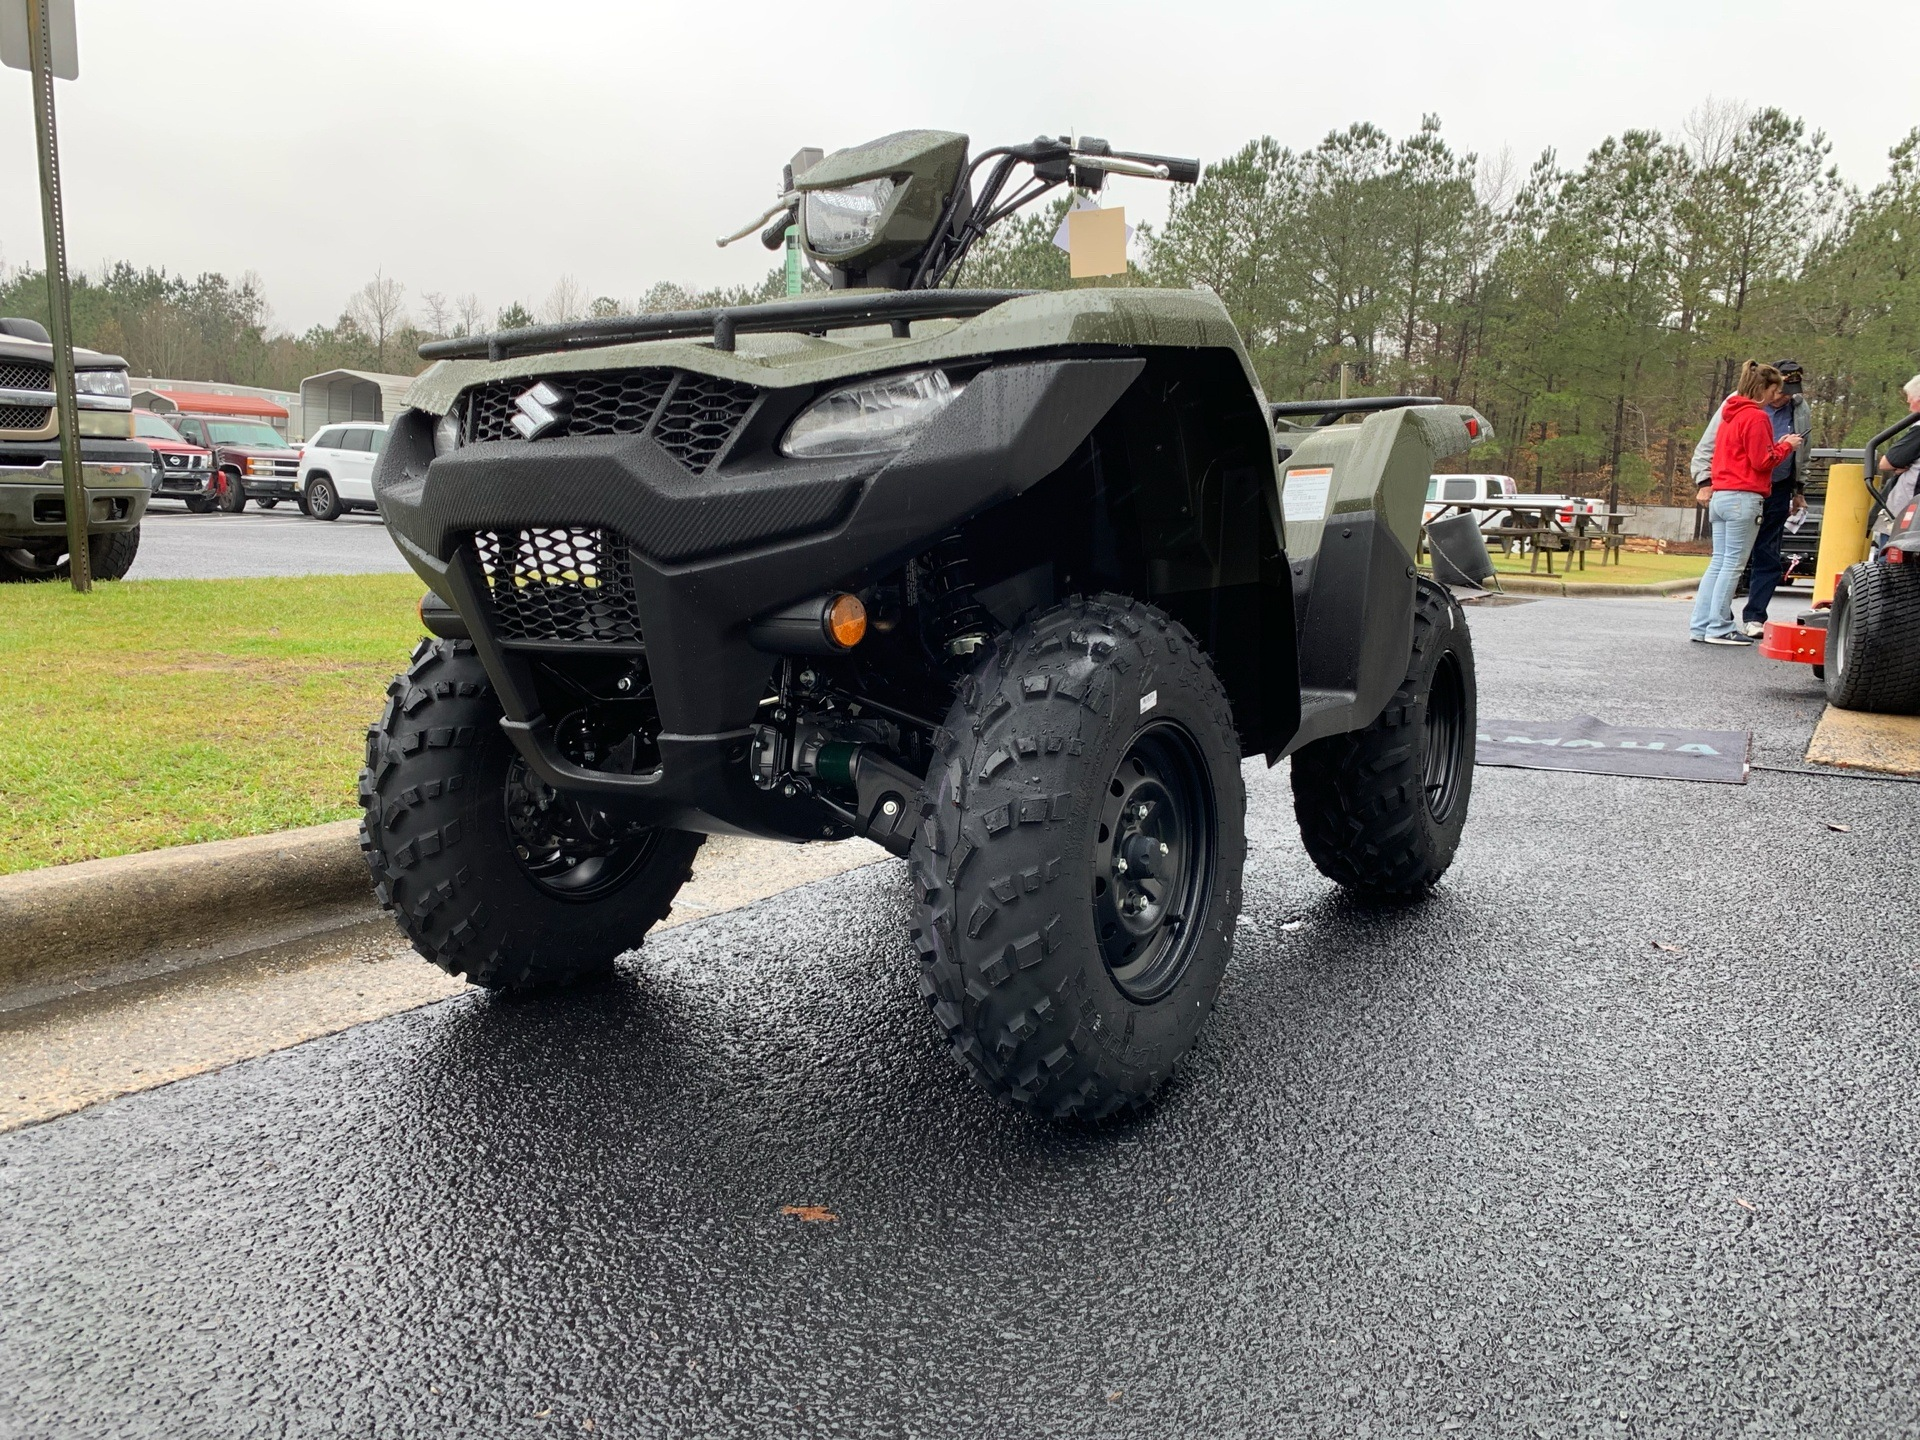 2019 Suzuki KingQuad 500AXi in Greenville, North Carolina - Photo 5